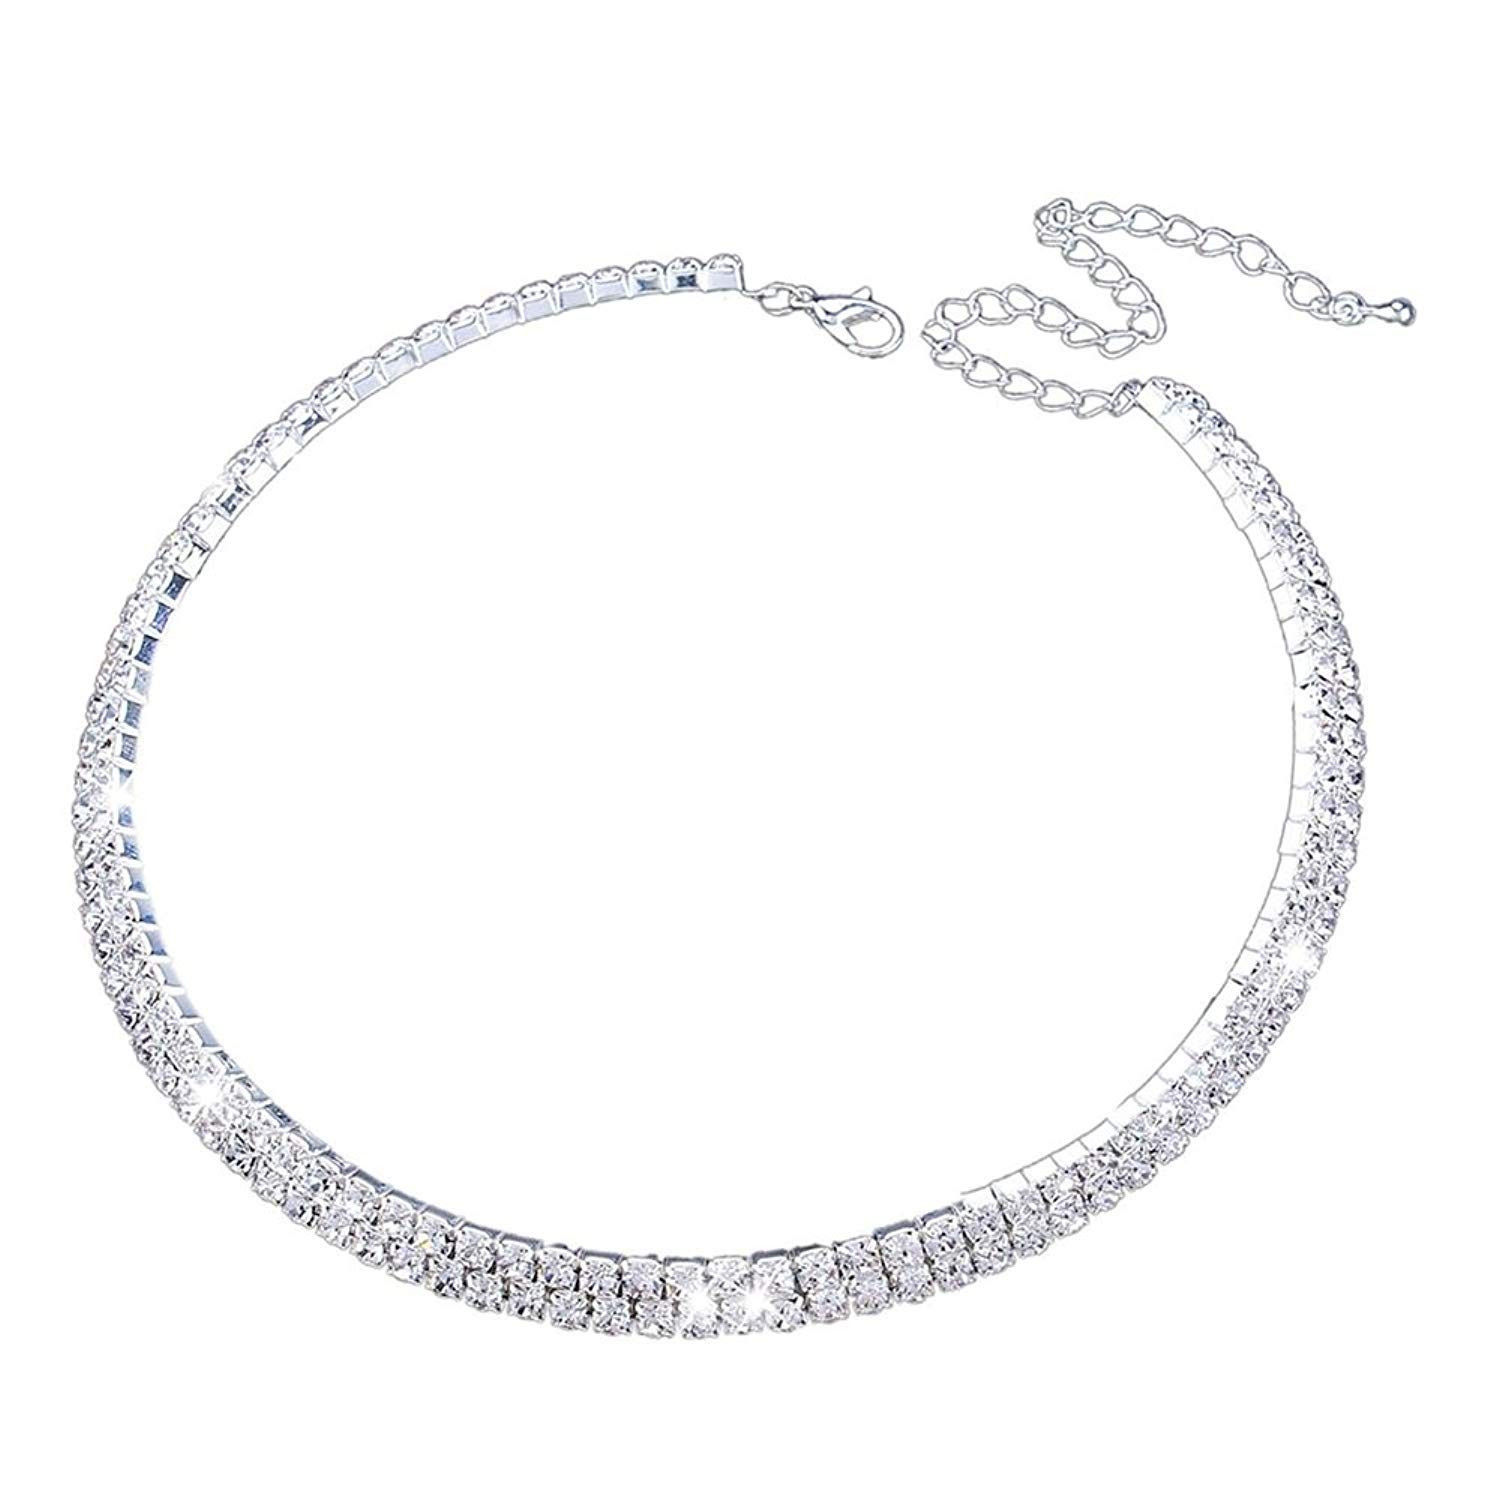 Fit&wit Bridal Wedding Jewelry Crystal Rhinestone Collar Choker Necklace Silver